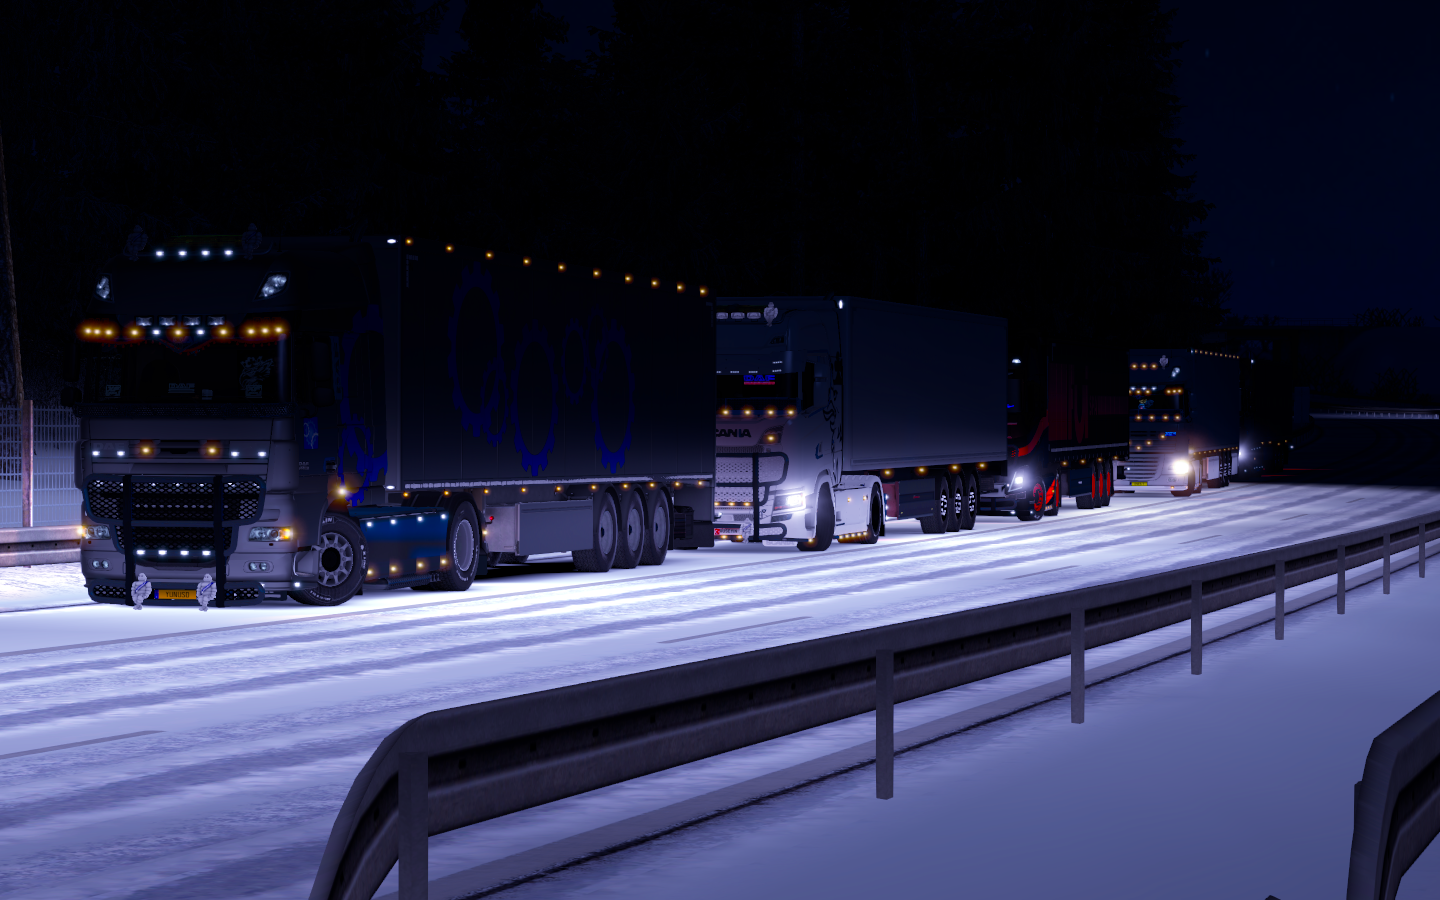 ets2_20190120_174802_00.png